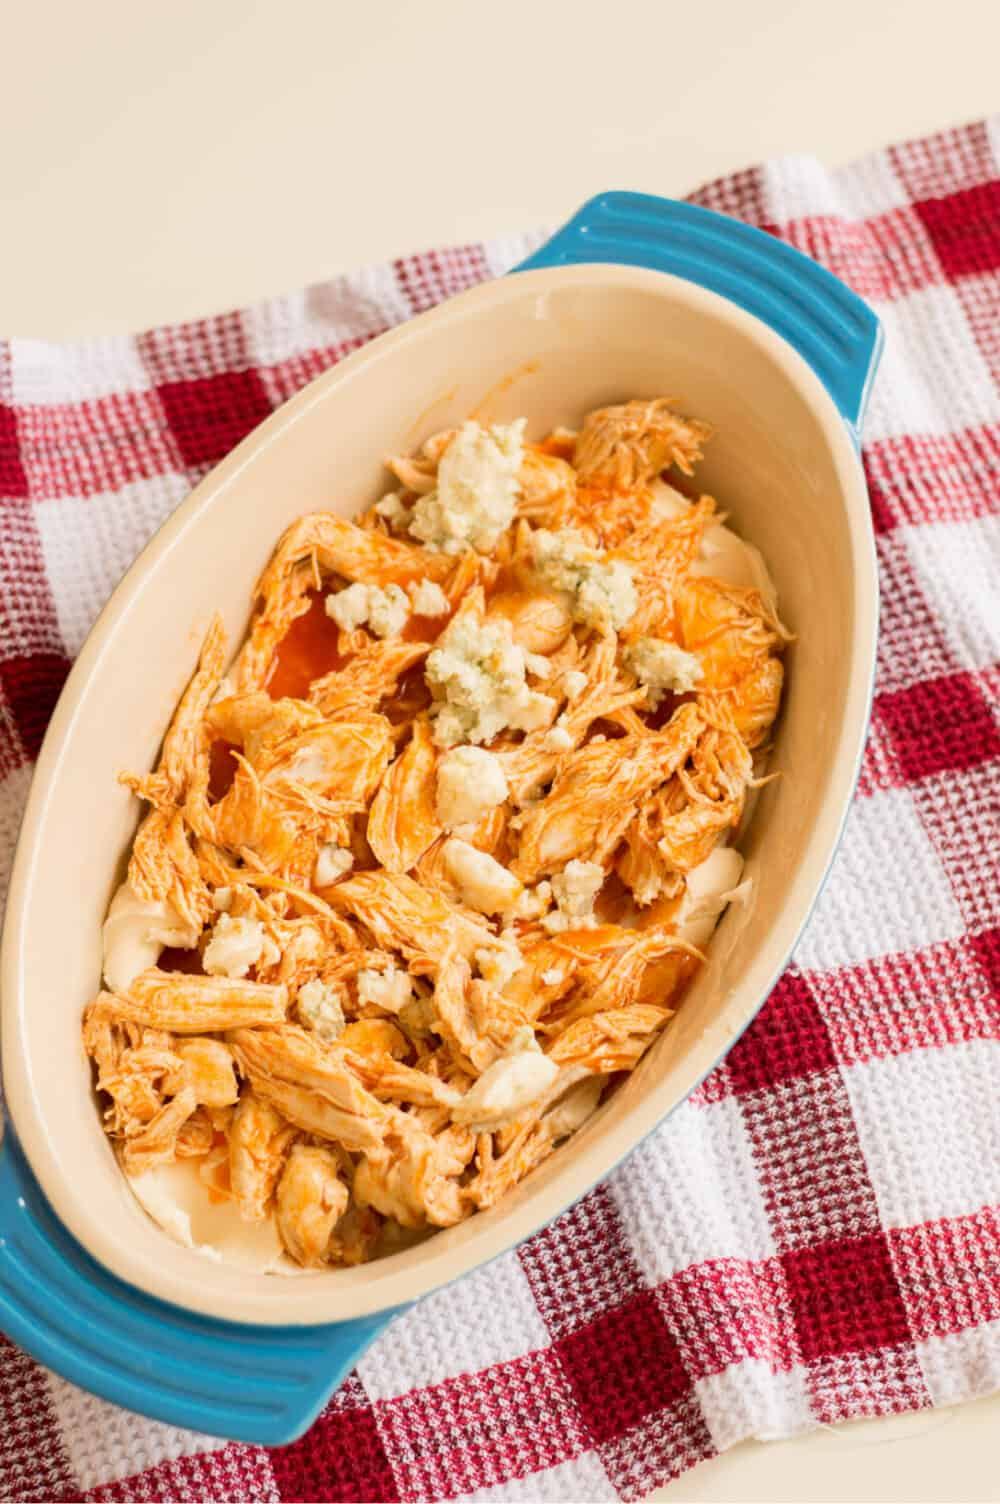 Layering chicken, cream cheese, and other ingredients for buffalo chicken dip appetizer